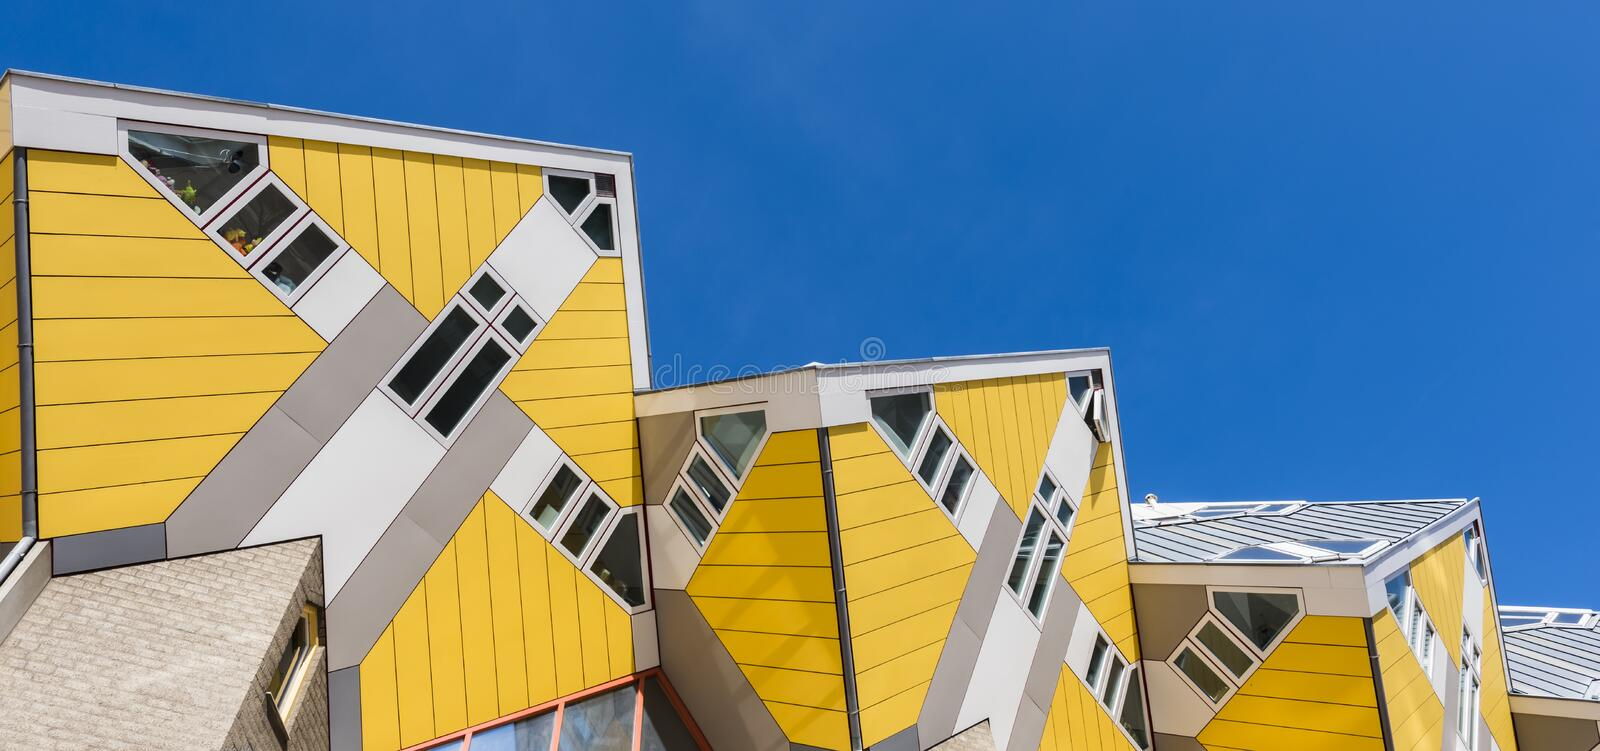 Cube Houses Rotterdam Sky in Line. Rotterdam, The Netherlands - March 24, 2017: Yellow cube houses Rotterdam by architect Piet Blom, 1984 royalty free stock photo